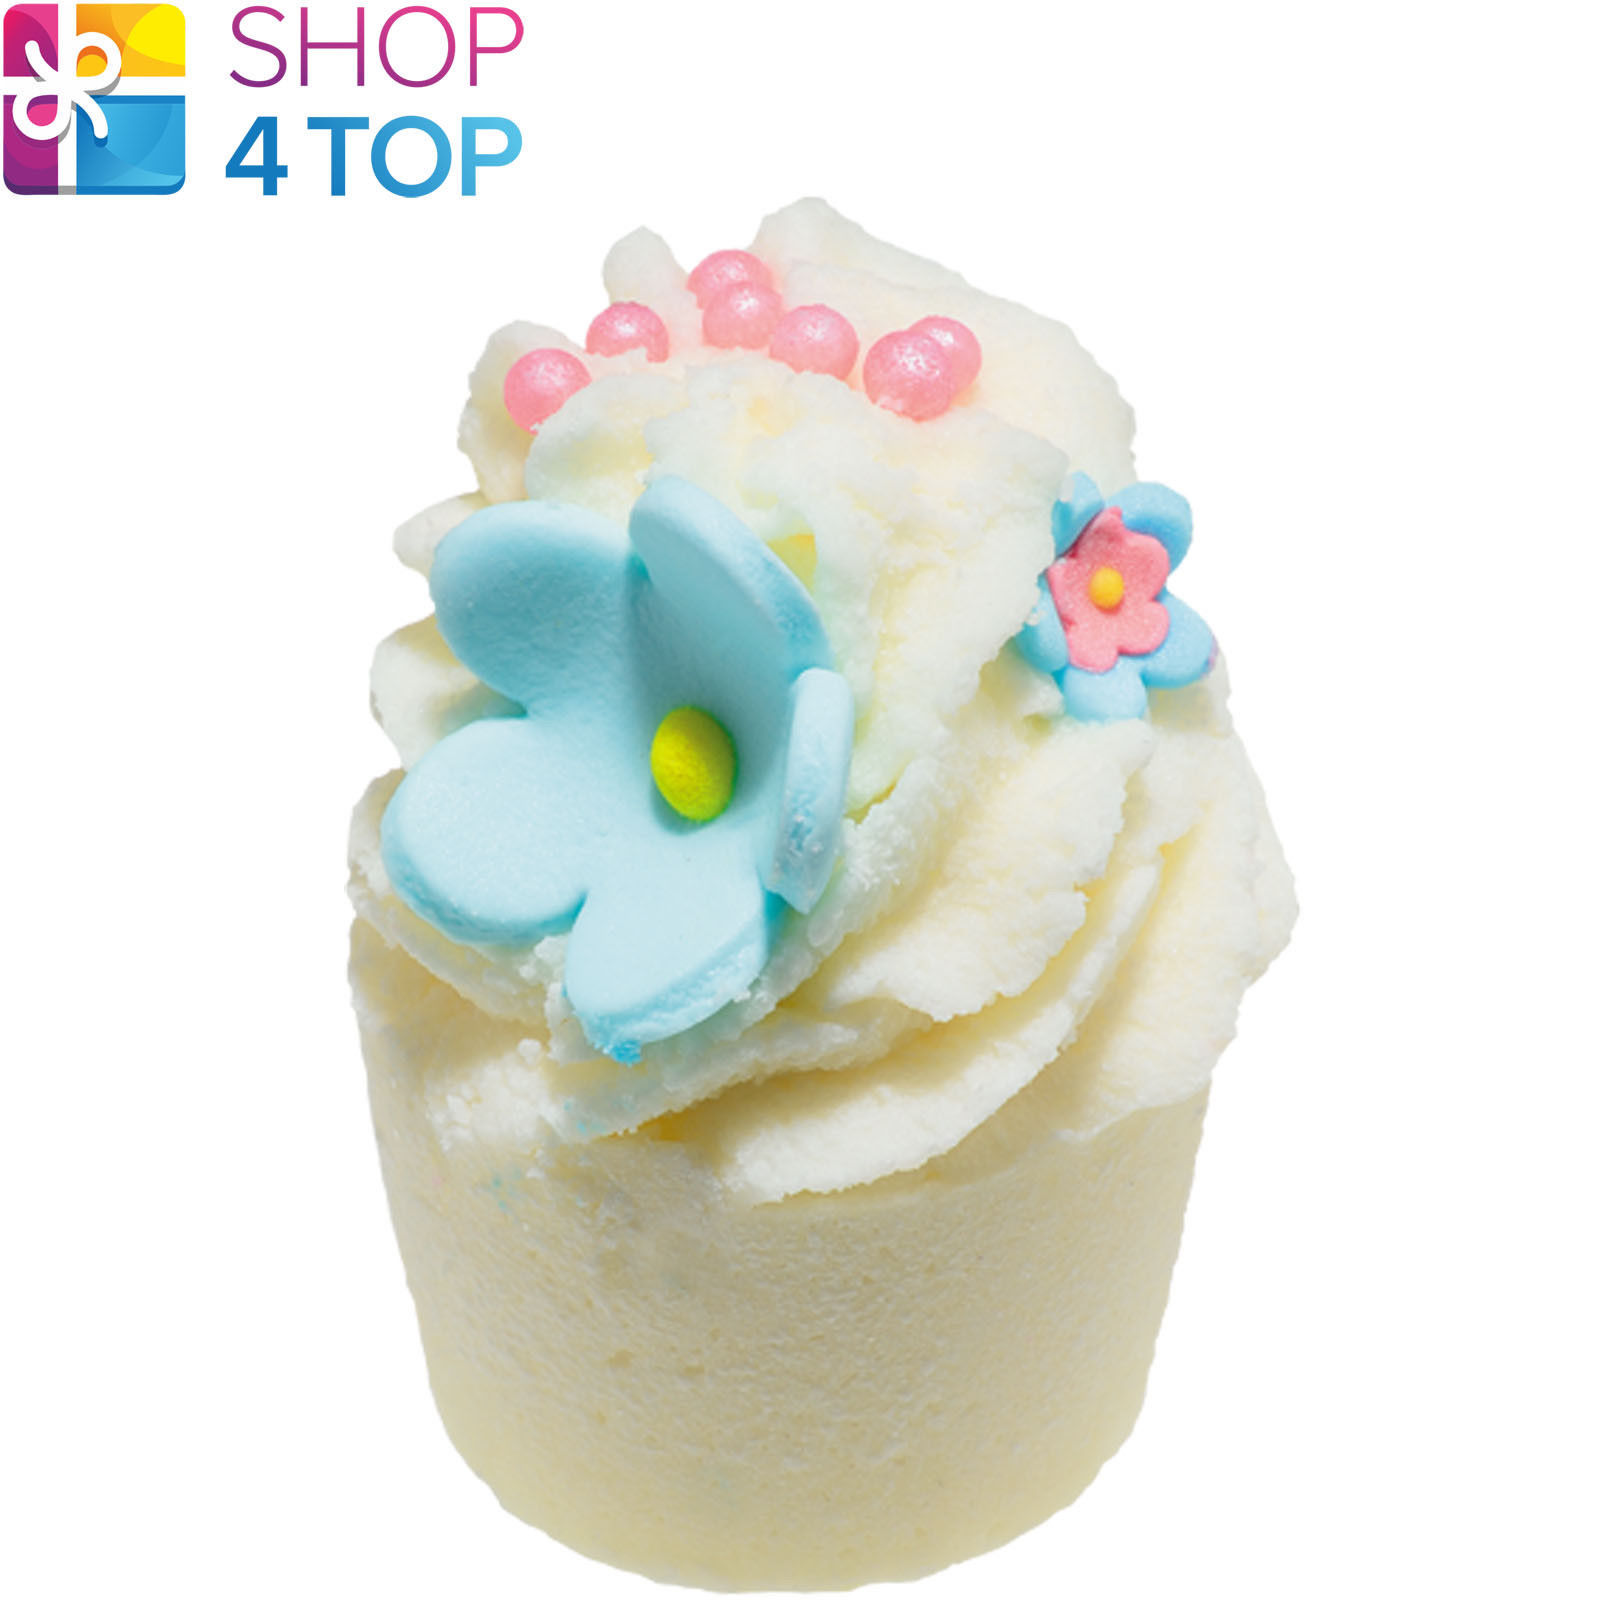 STRIKE A POSY BATH MALLOW BOMB COSMETICS FLOWERS ROSE HANDMADE NATURAL NEW